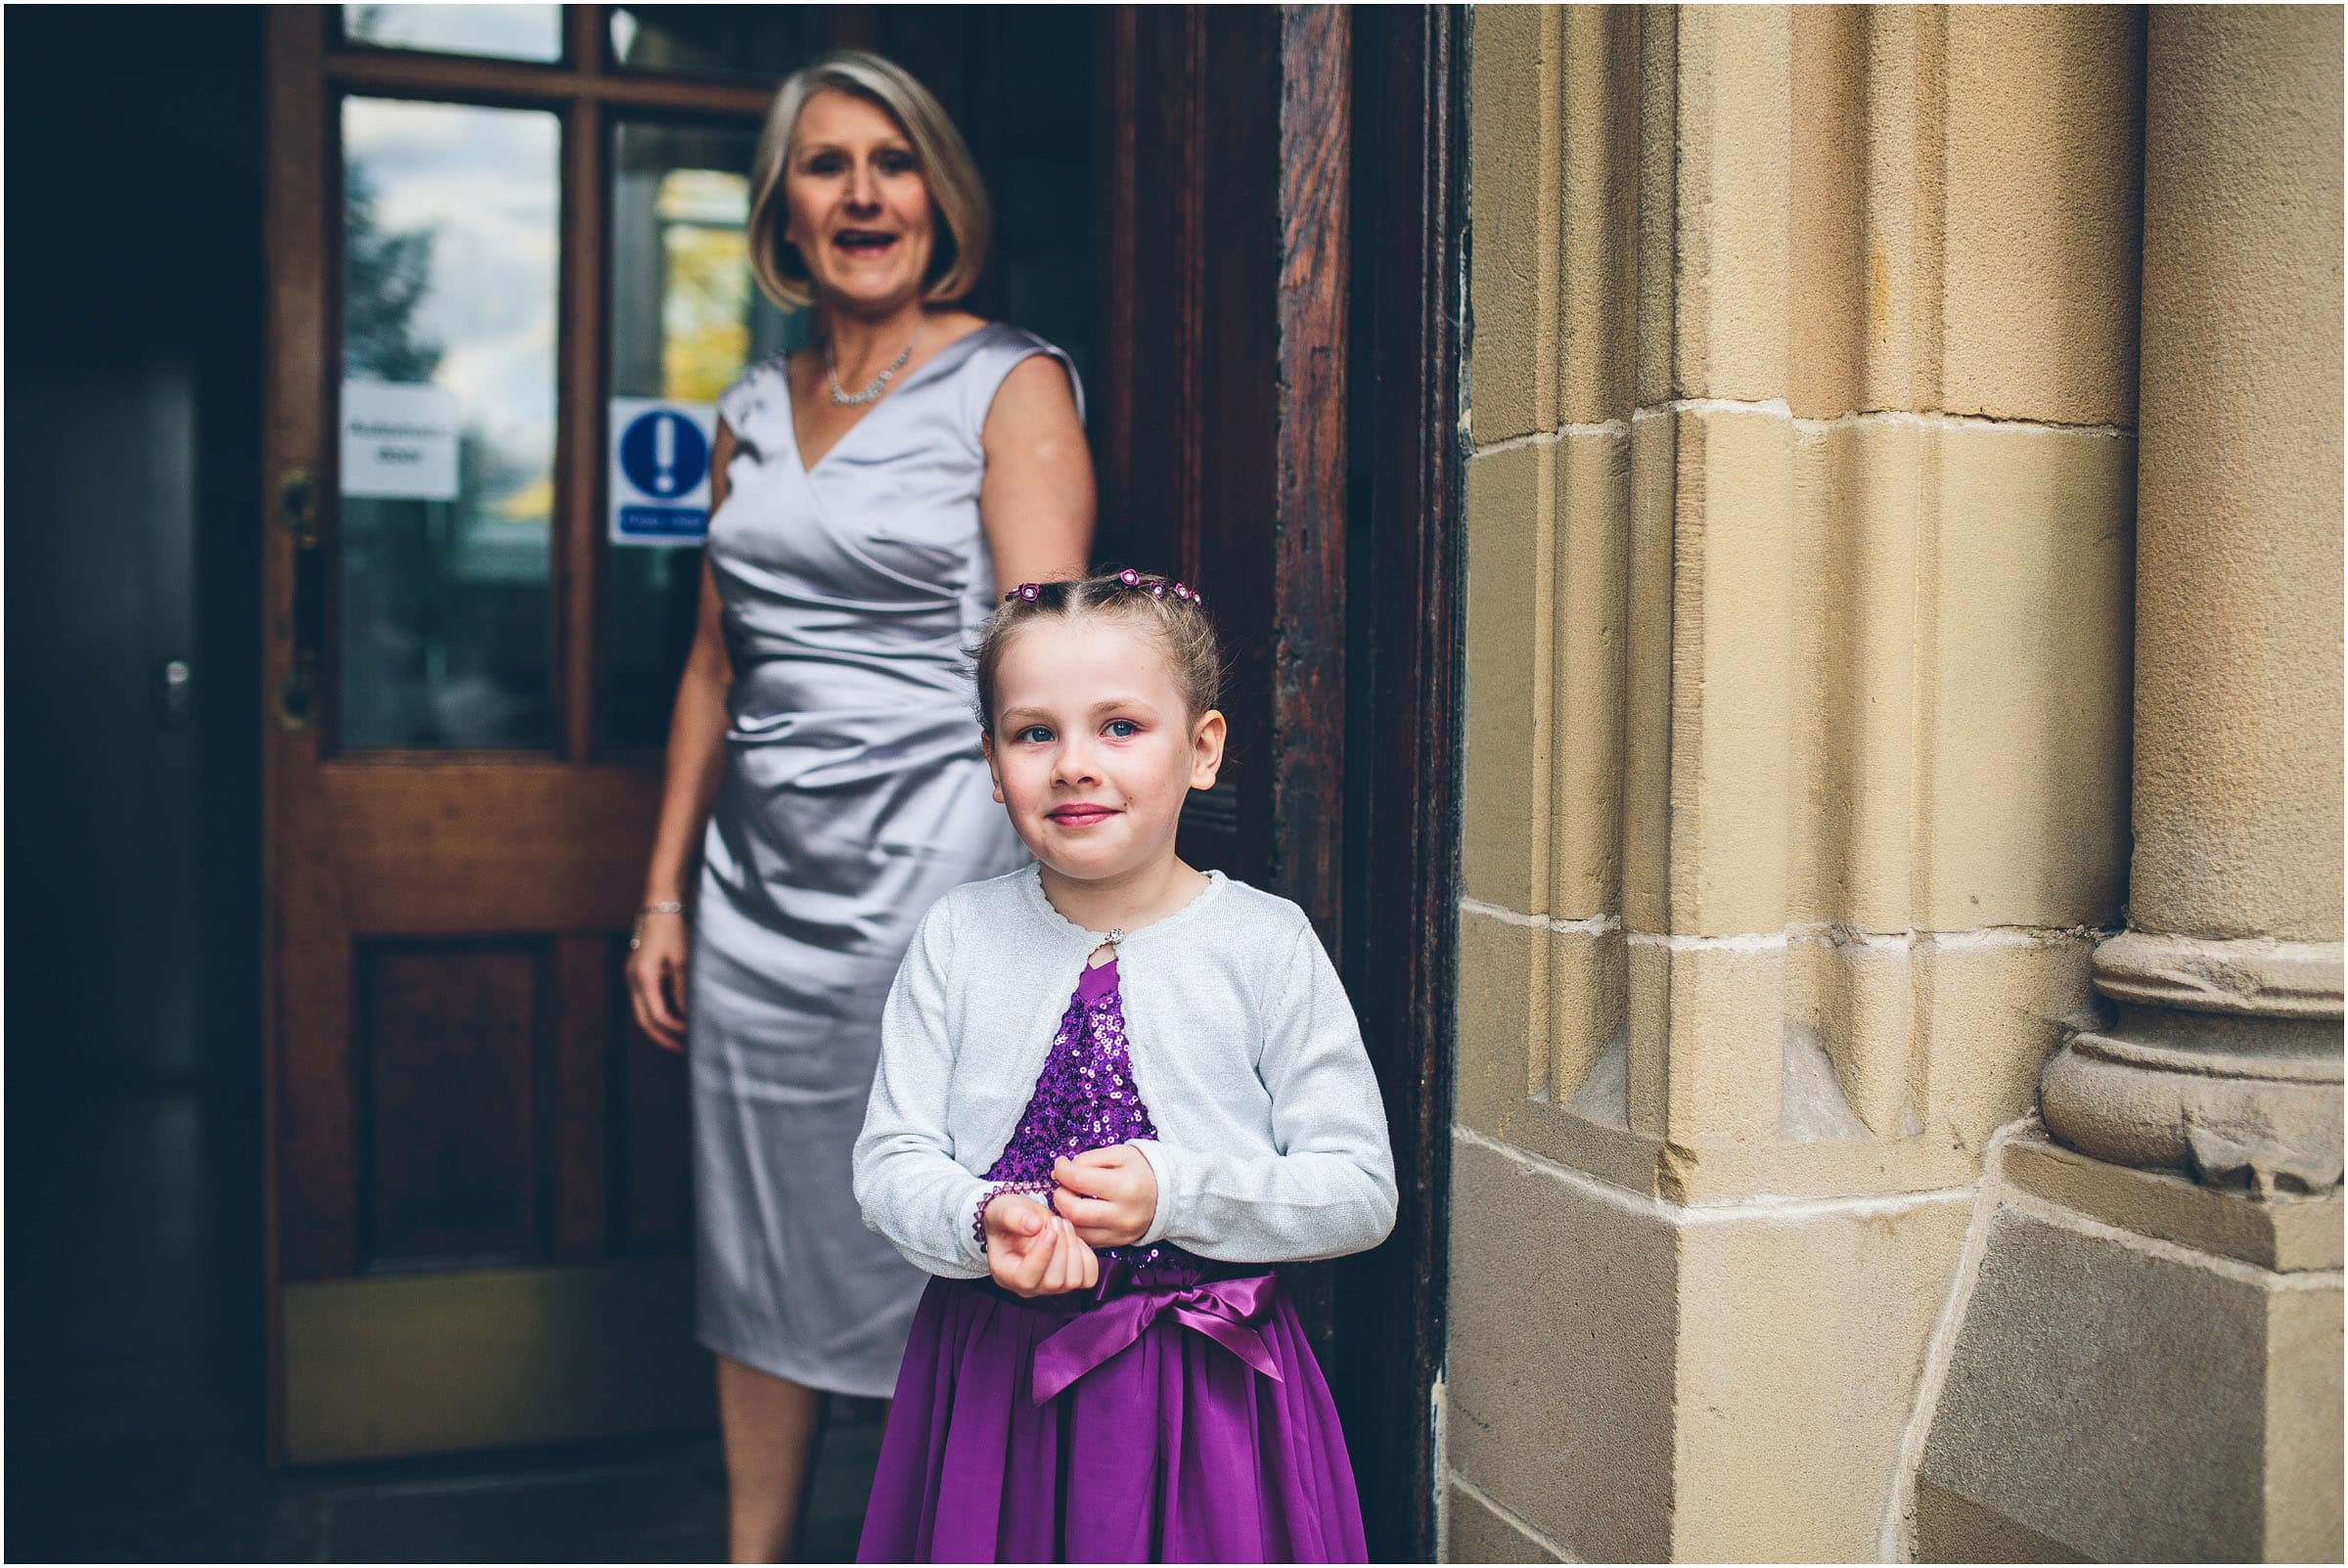 manchester_museum_wedding_photography_0017